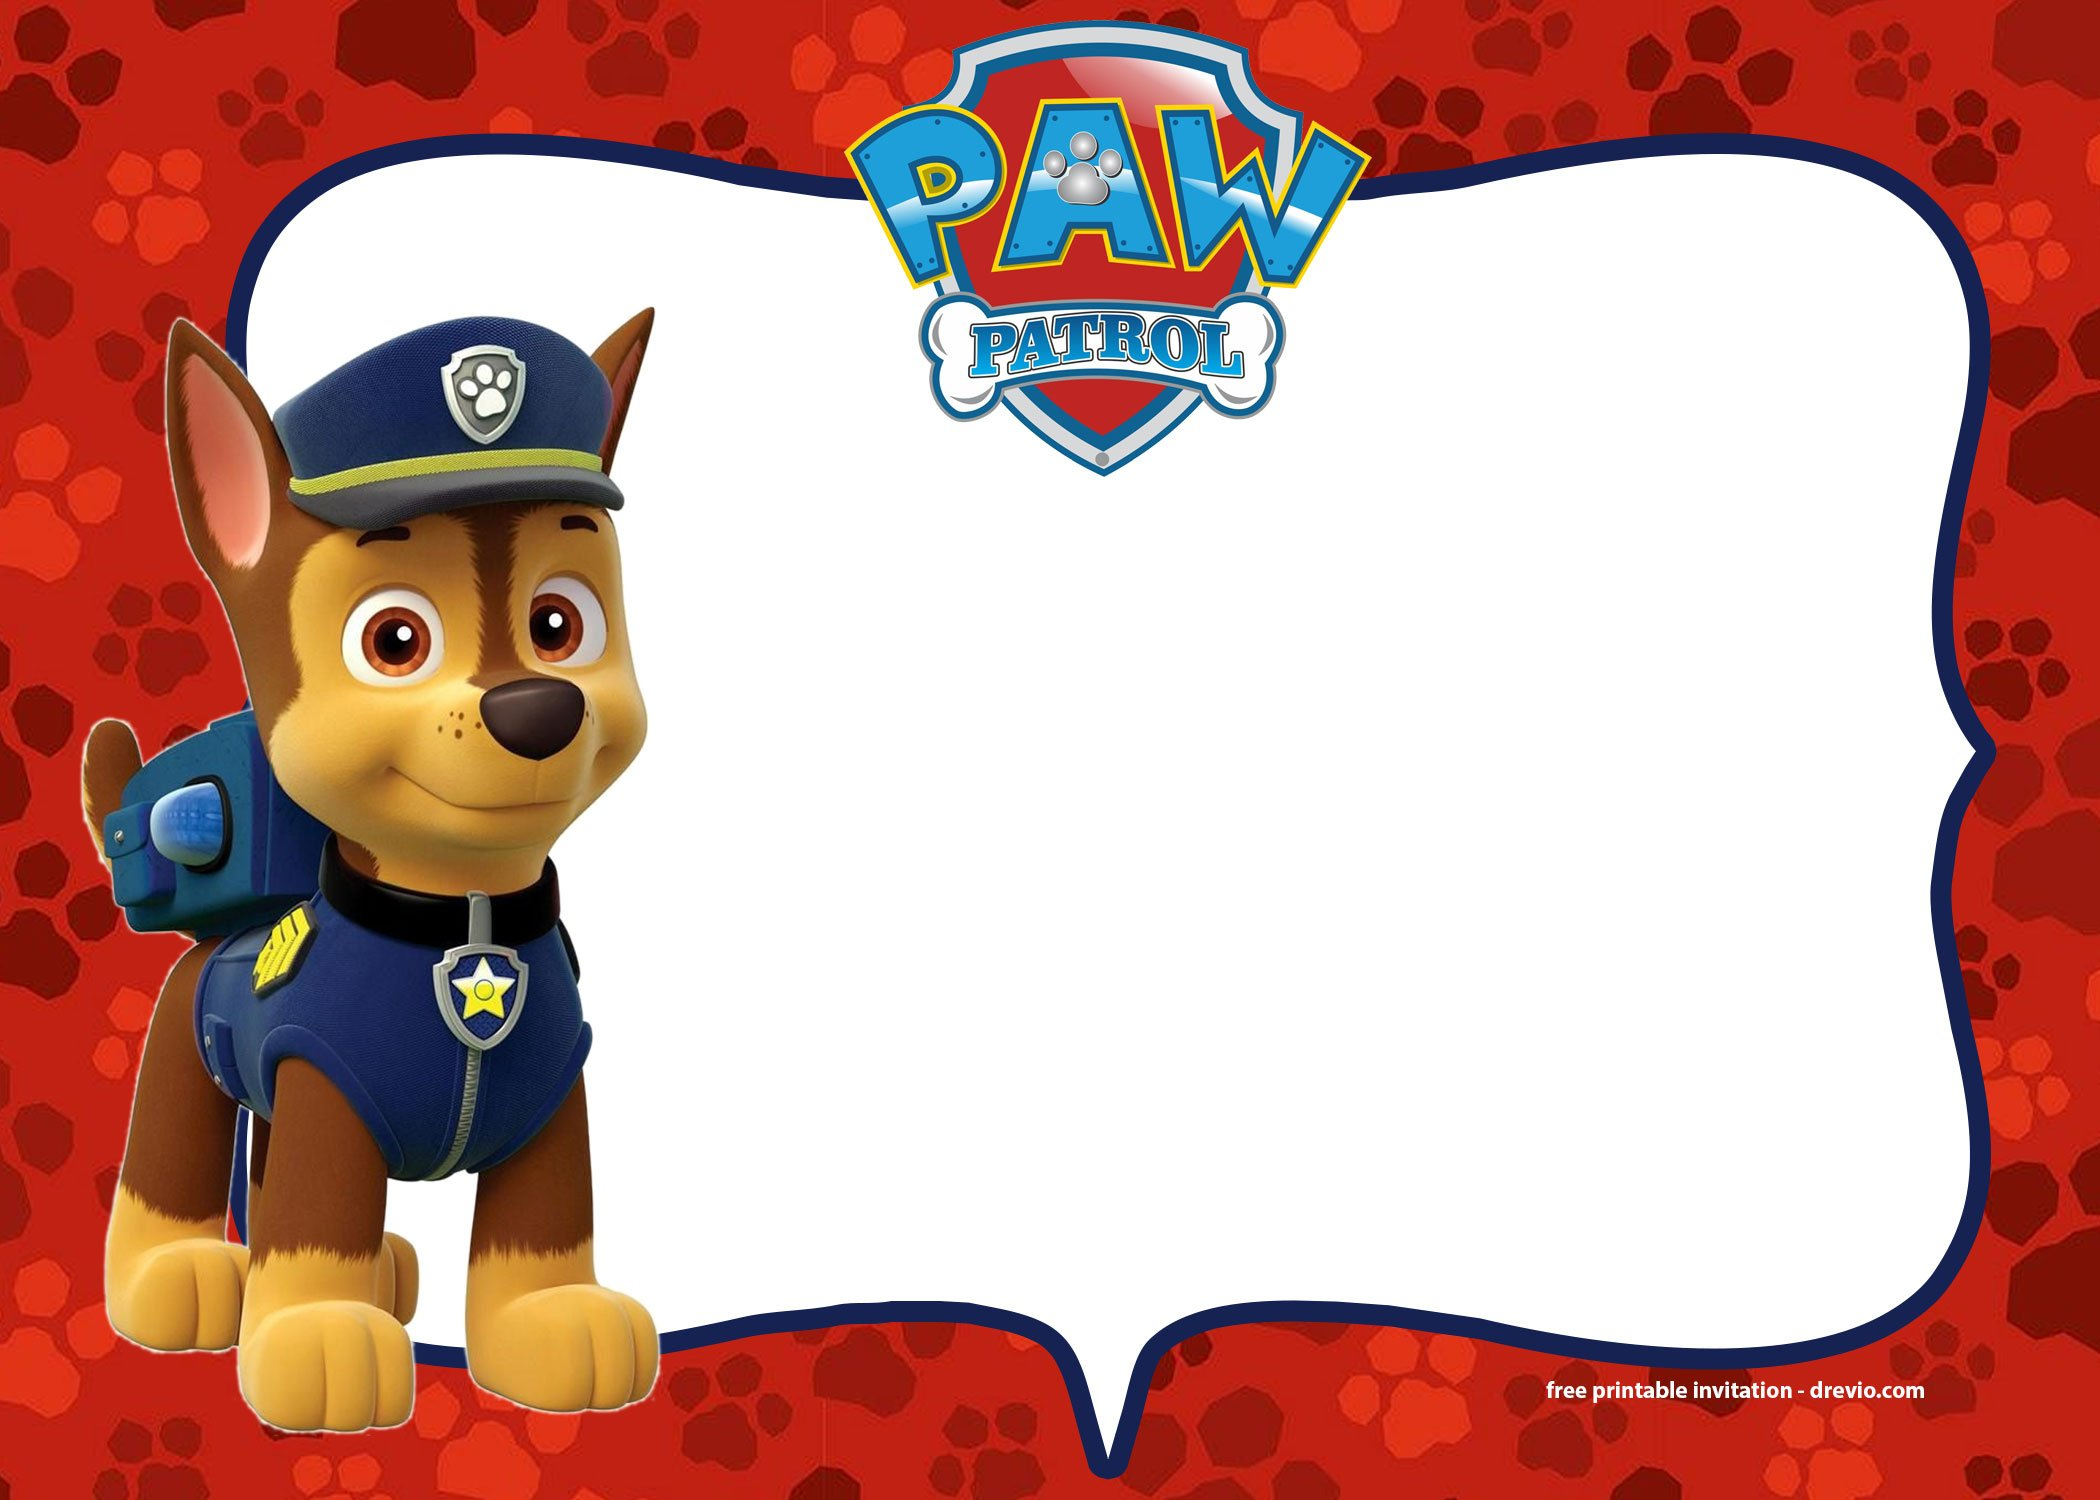 Browse Our Free Printable Chase Paw Patrol Birthday Invitation Template Below